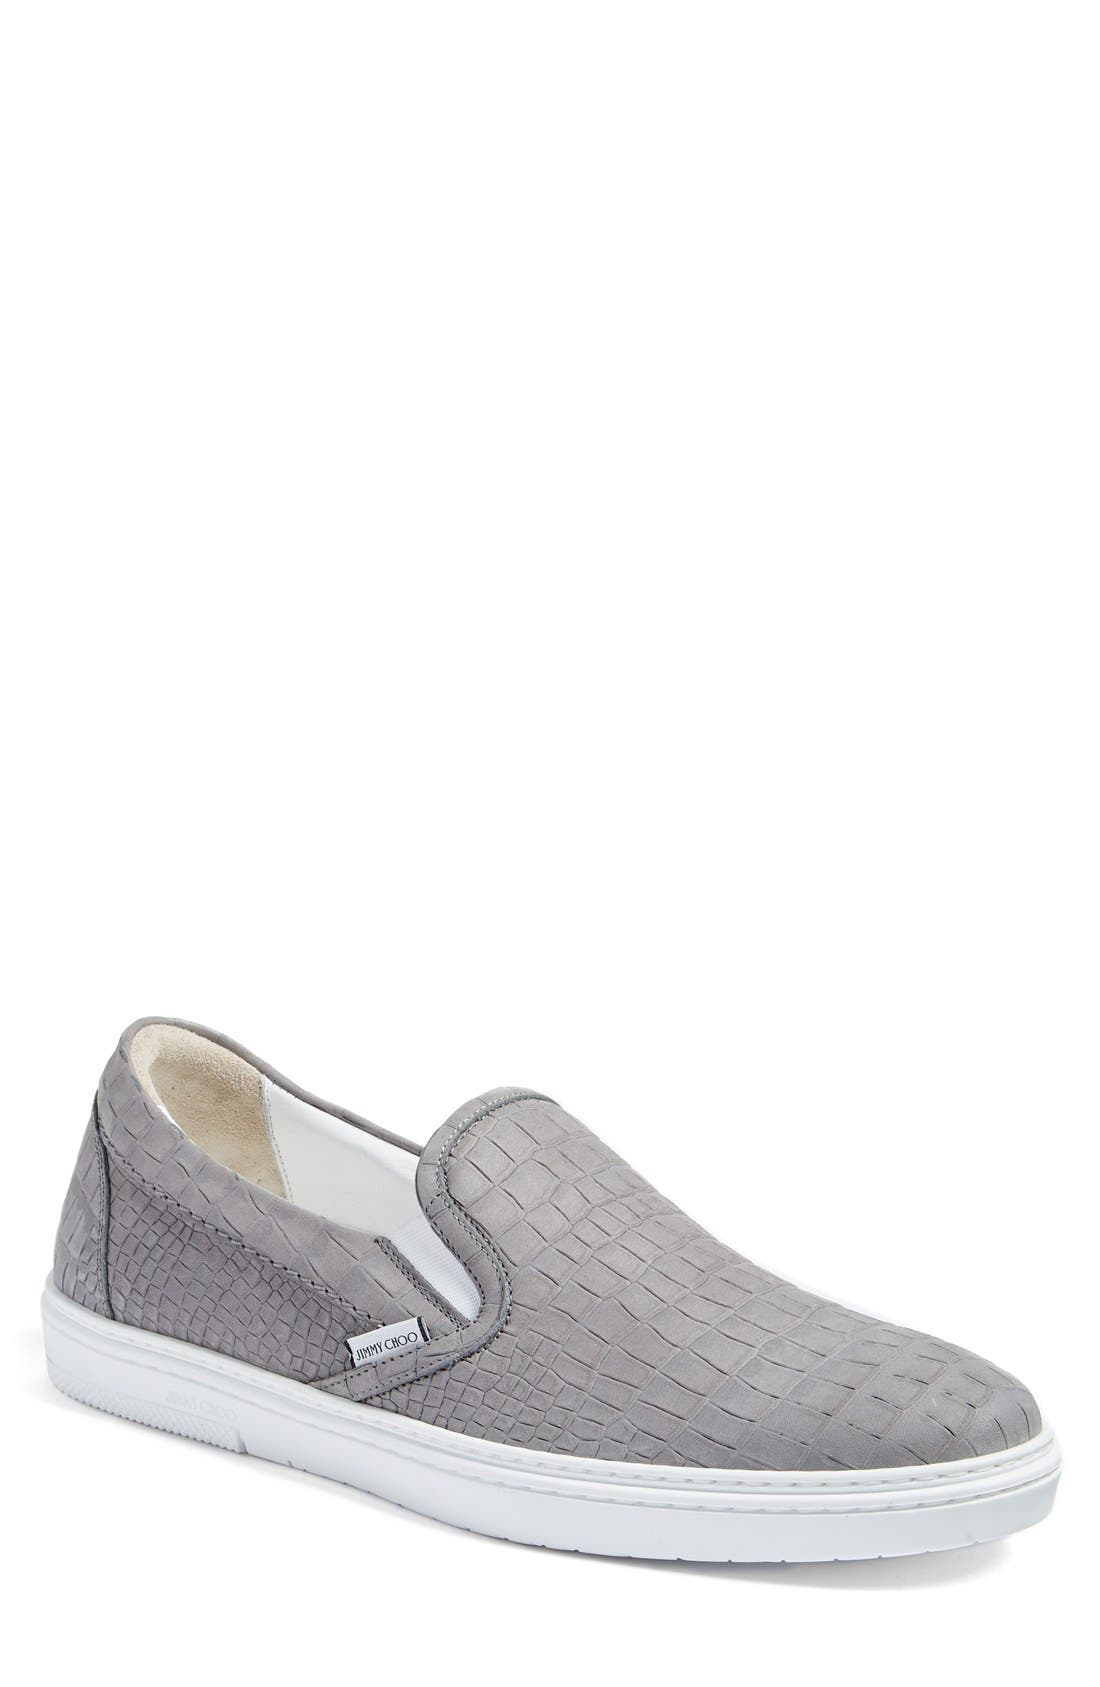 JIMMY CHOO 'Grove' Croc Embossed Slip-On Sneaker